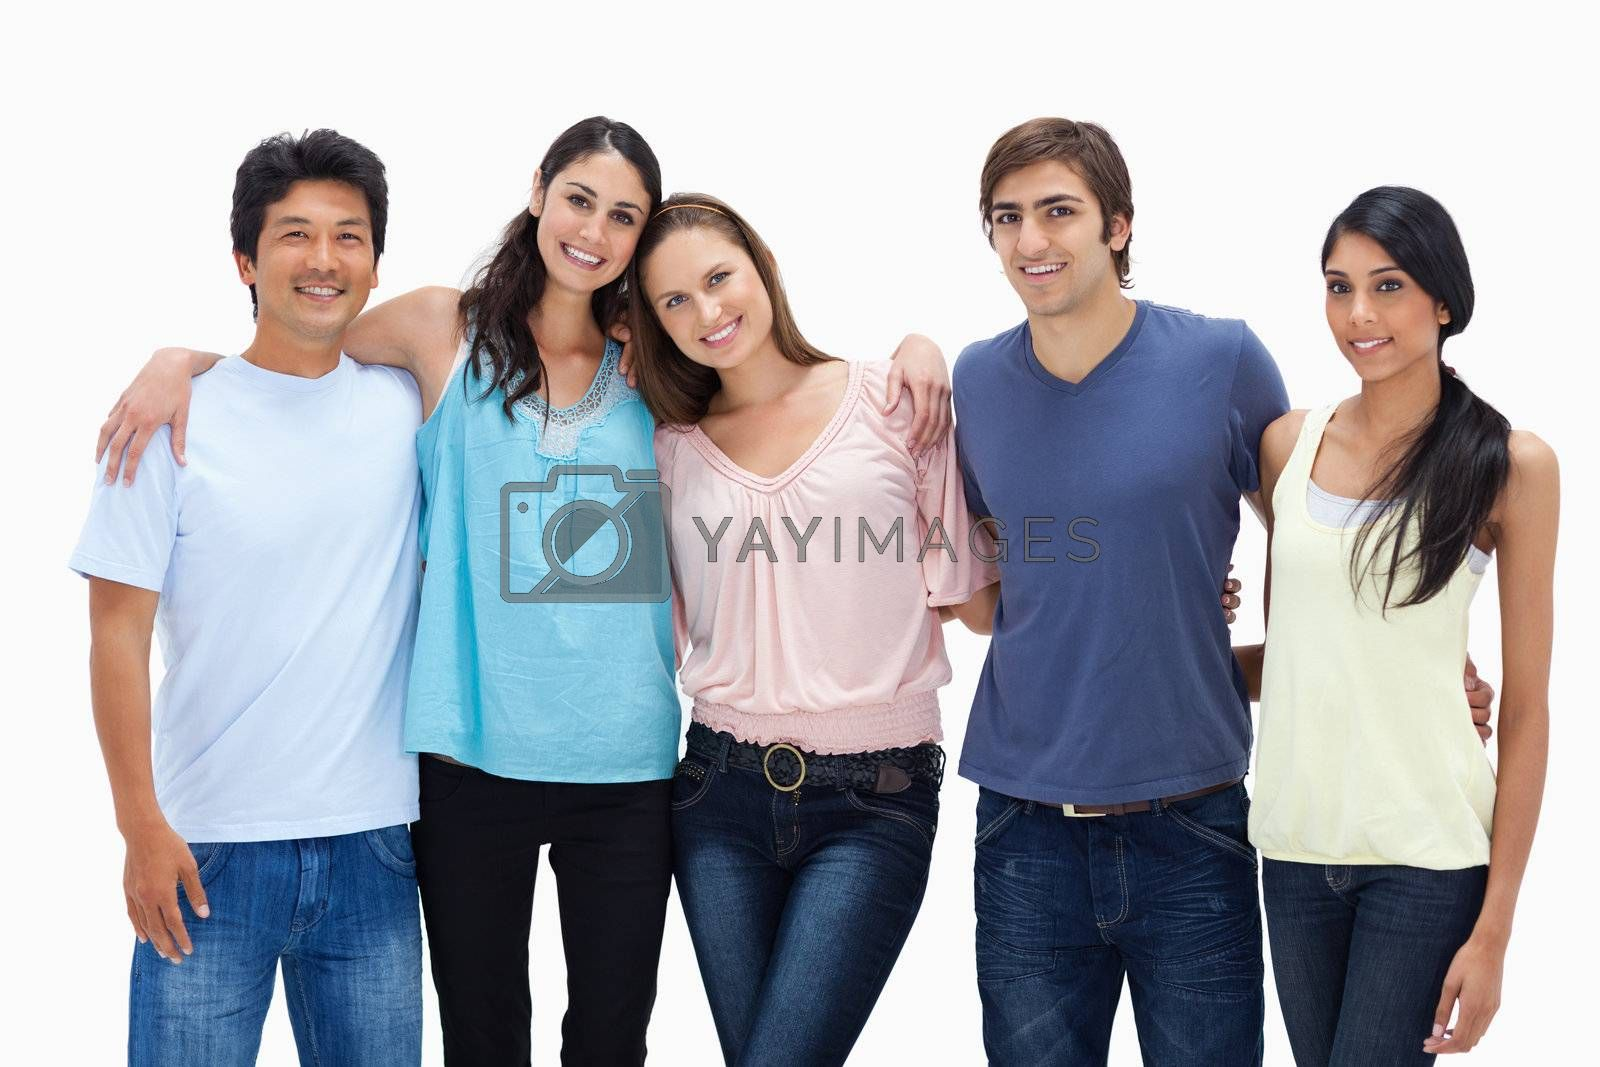 Friends arm in arm against white background